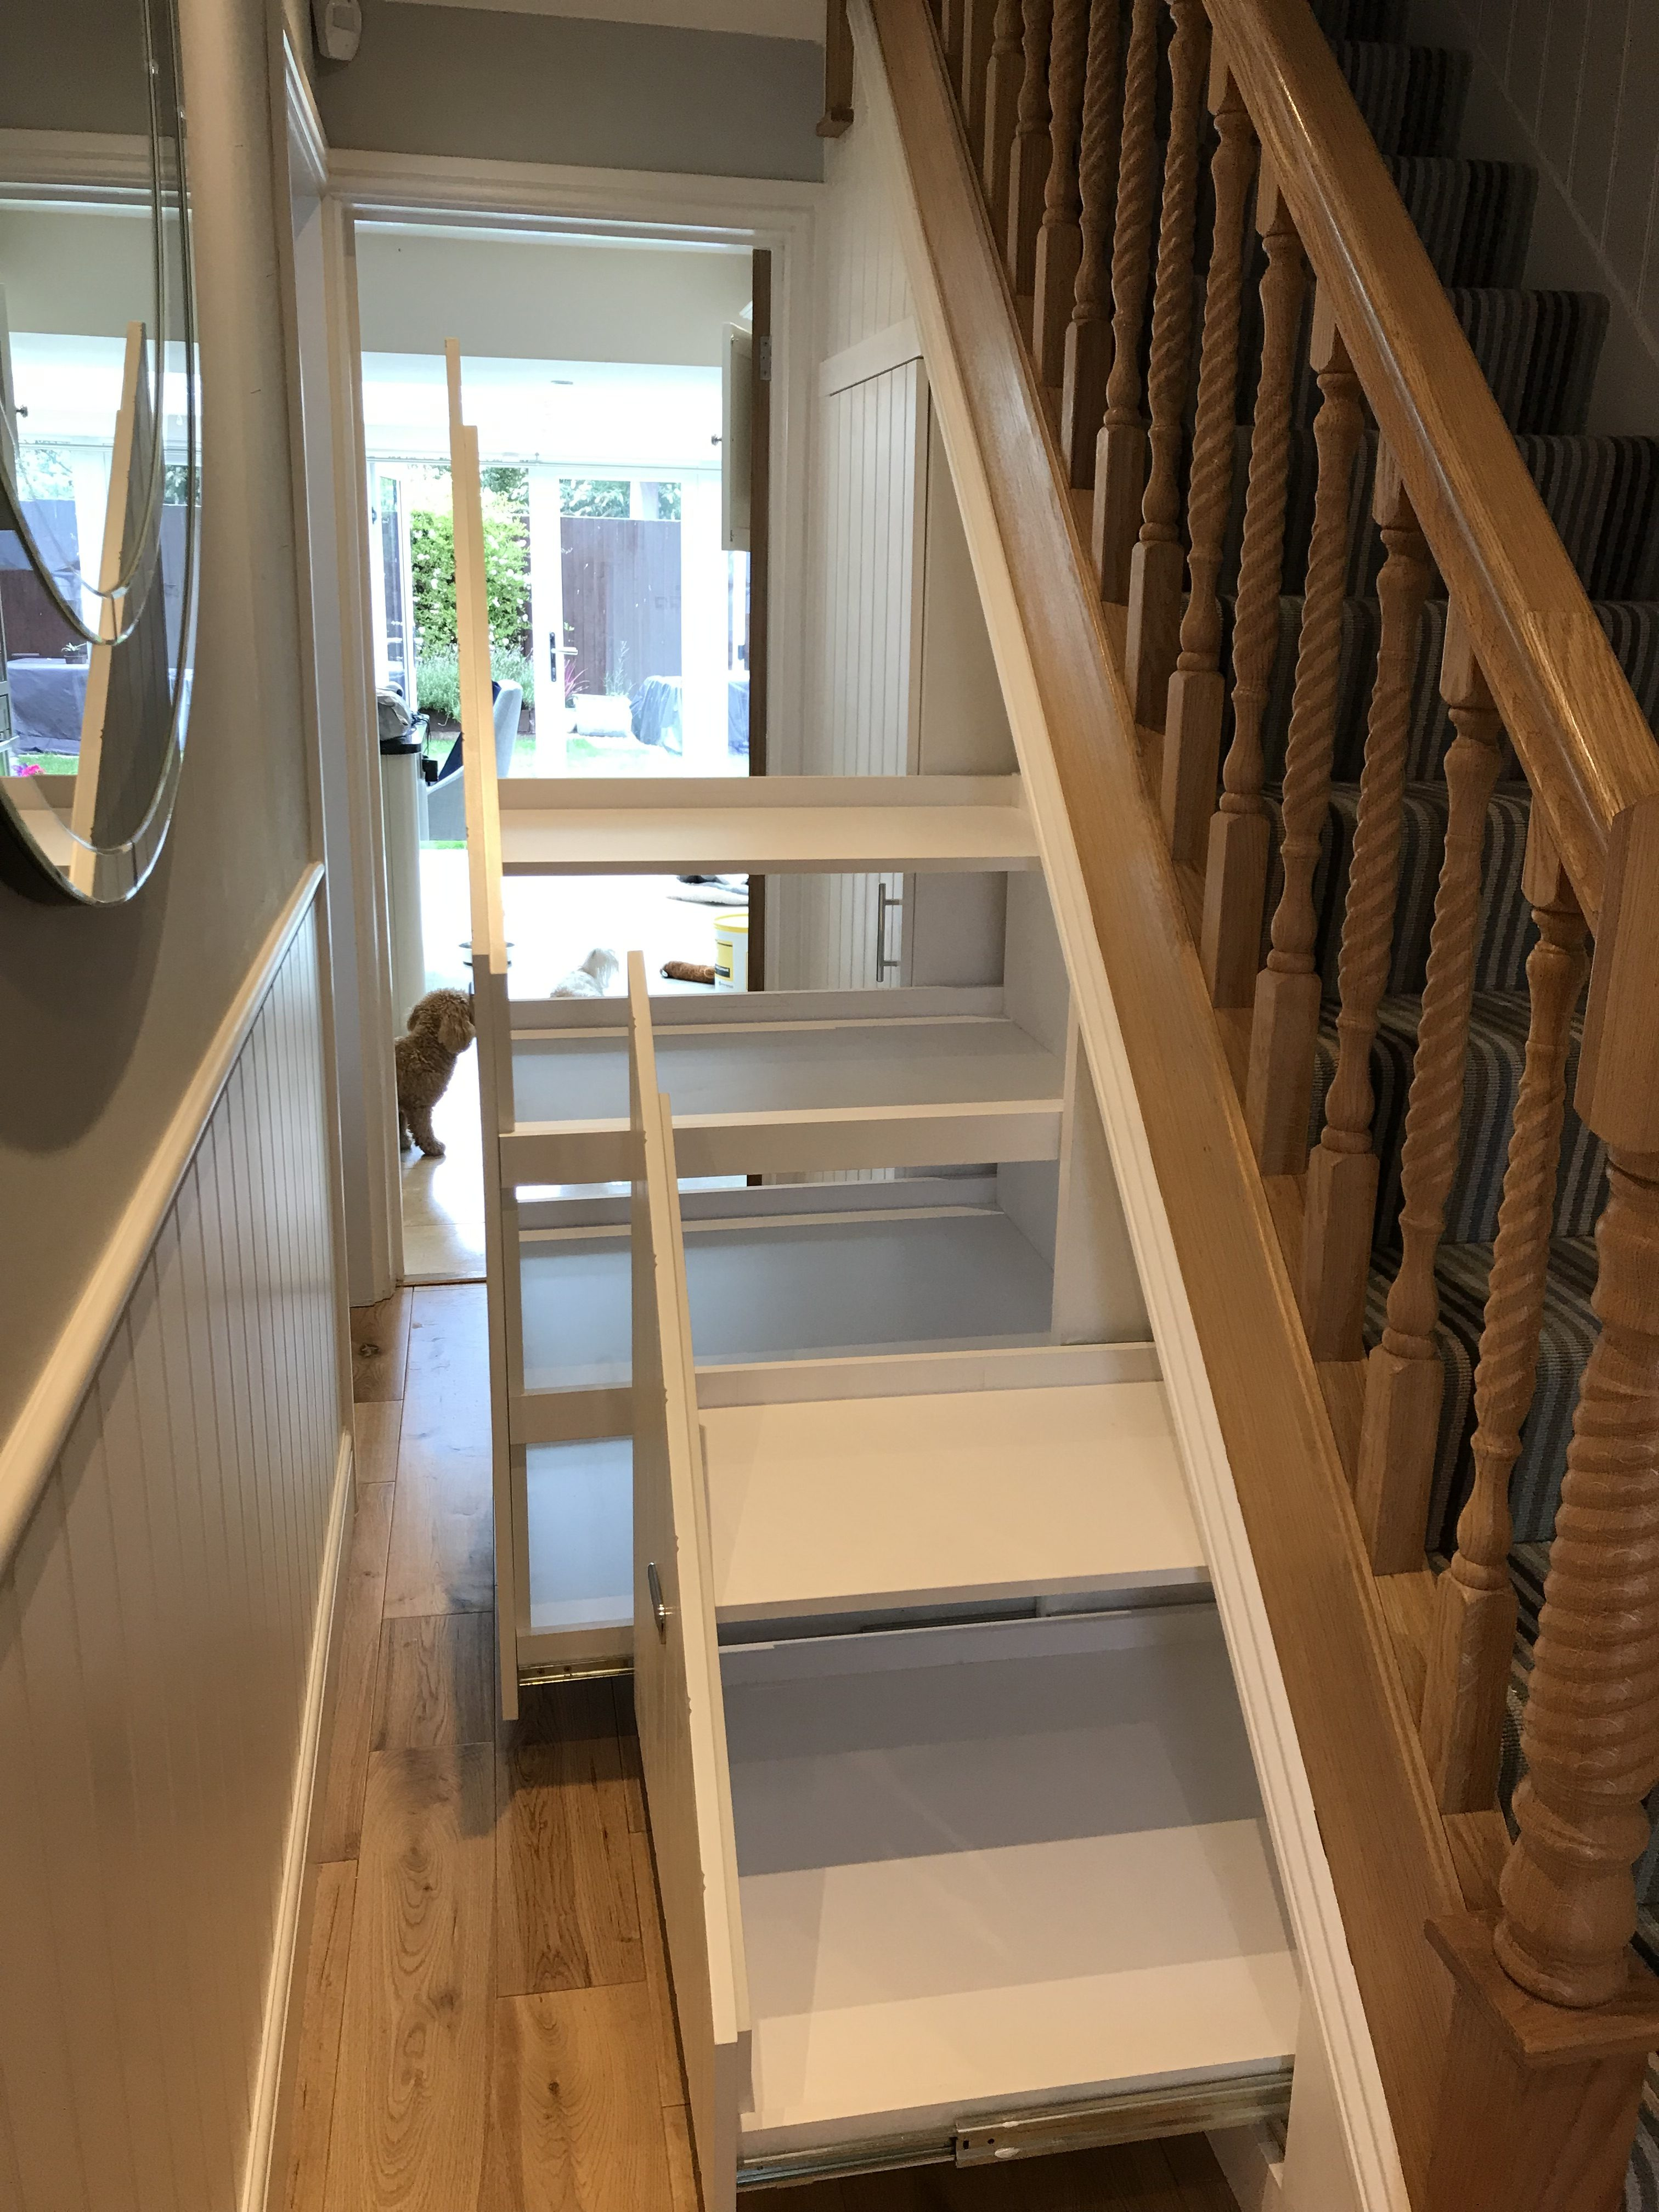 Under-stairs pull-out cabinets